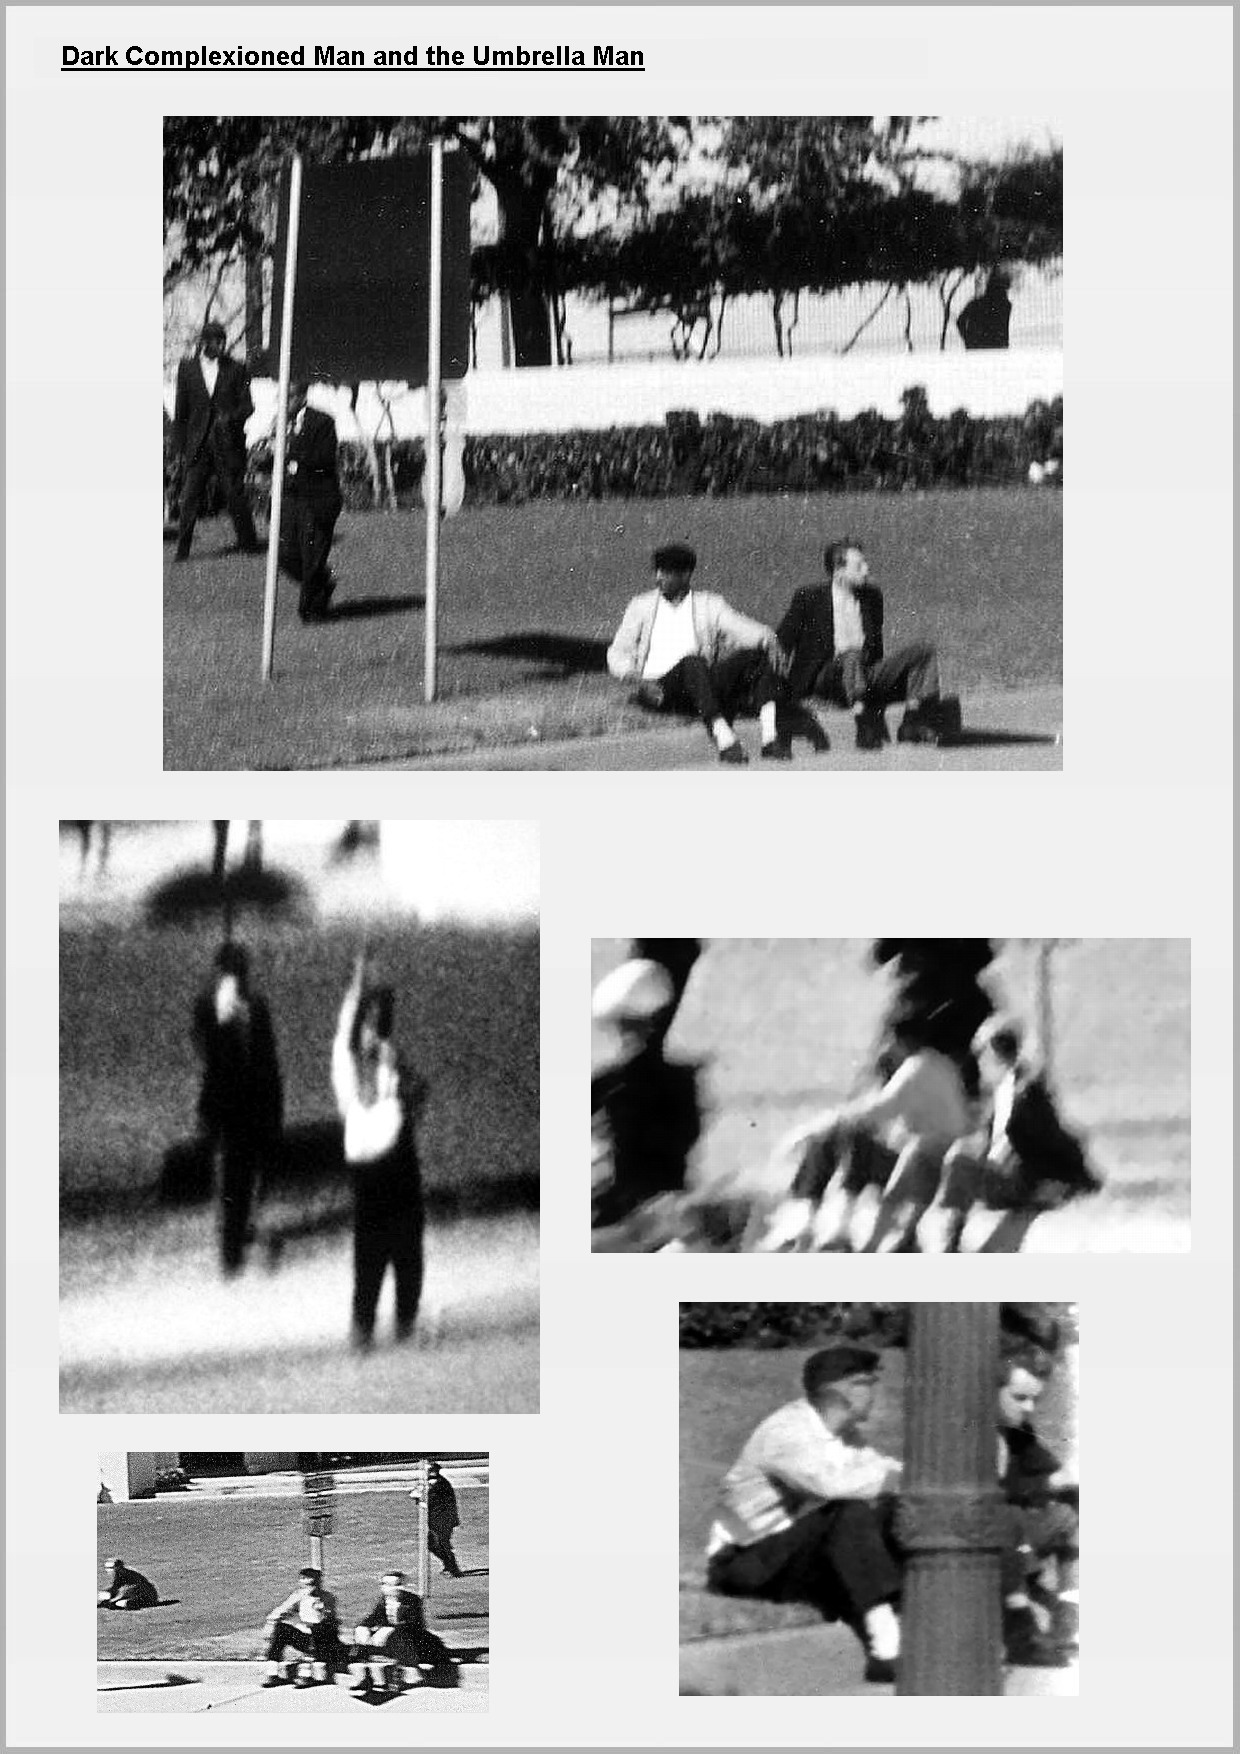 DeRosaWorld: 30 Days of JFK Assassination Facts (Umbrellas and